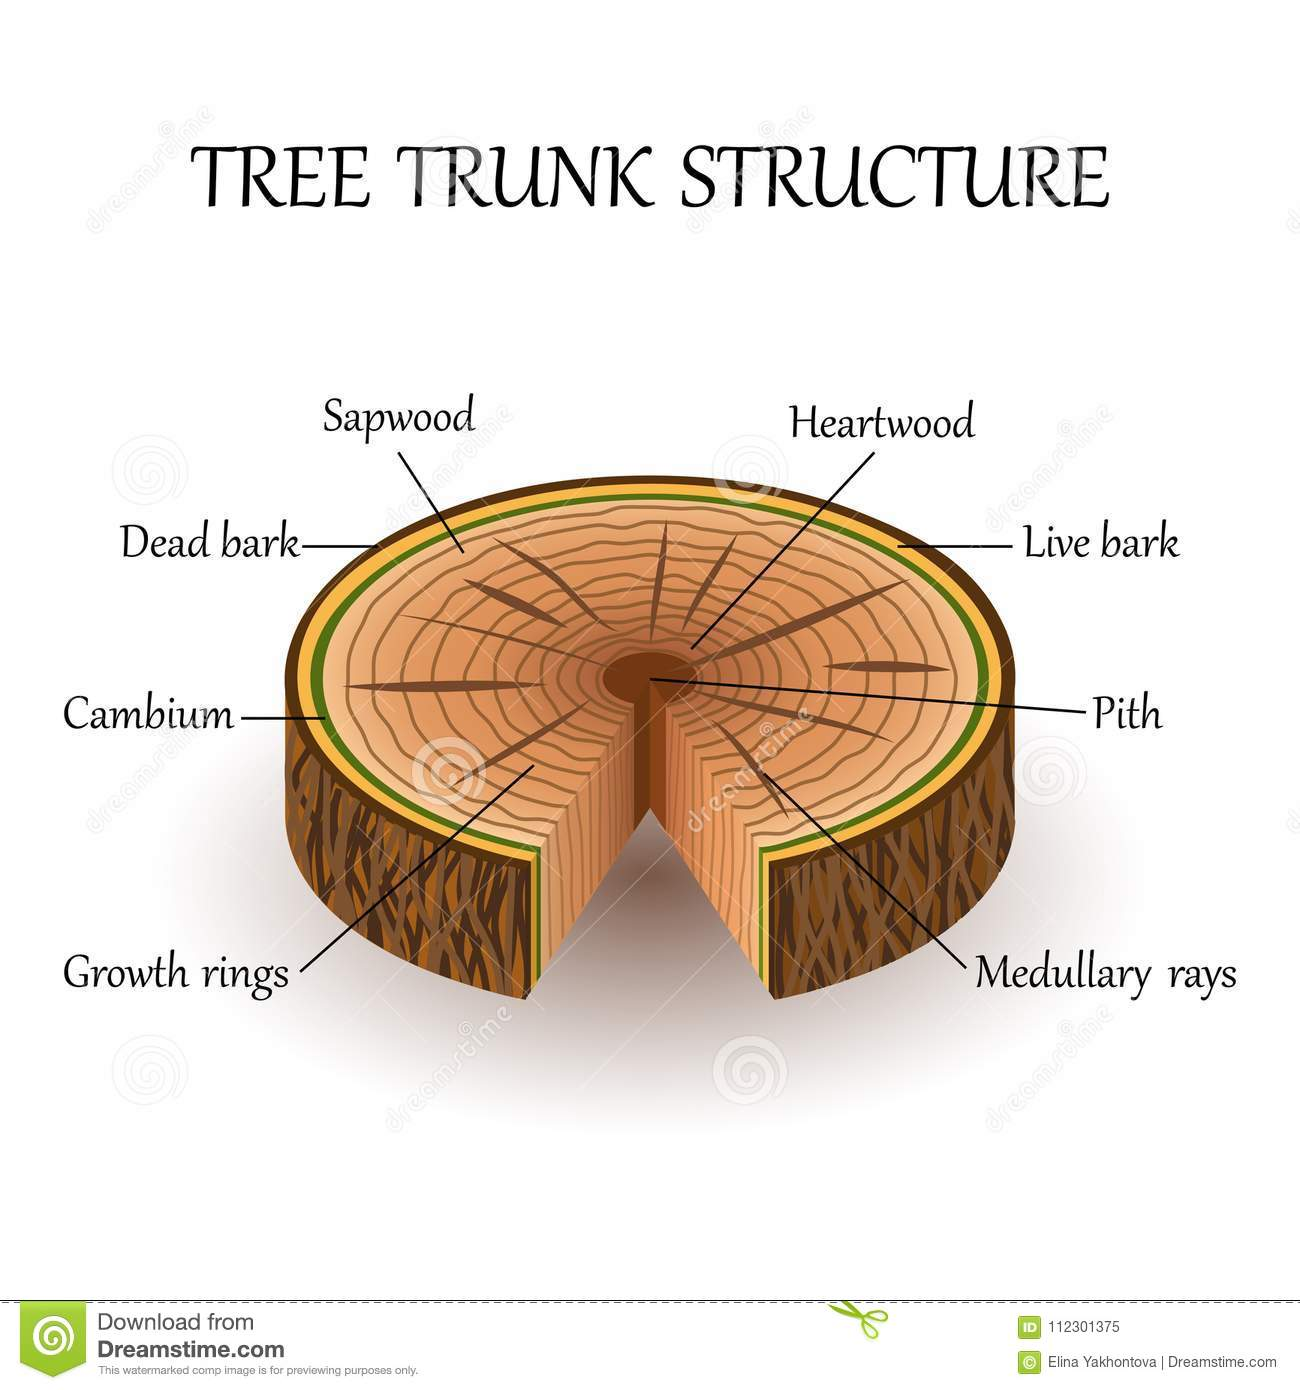 Tree Trunk Plant Diagram Biology Data Wiring Diagrams Help Cell The Structure Of Slice Layers In Cross Section Rh Dreamstime Com Labeled